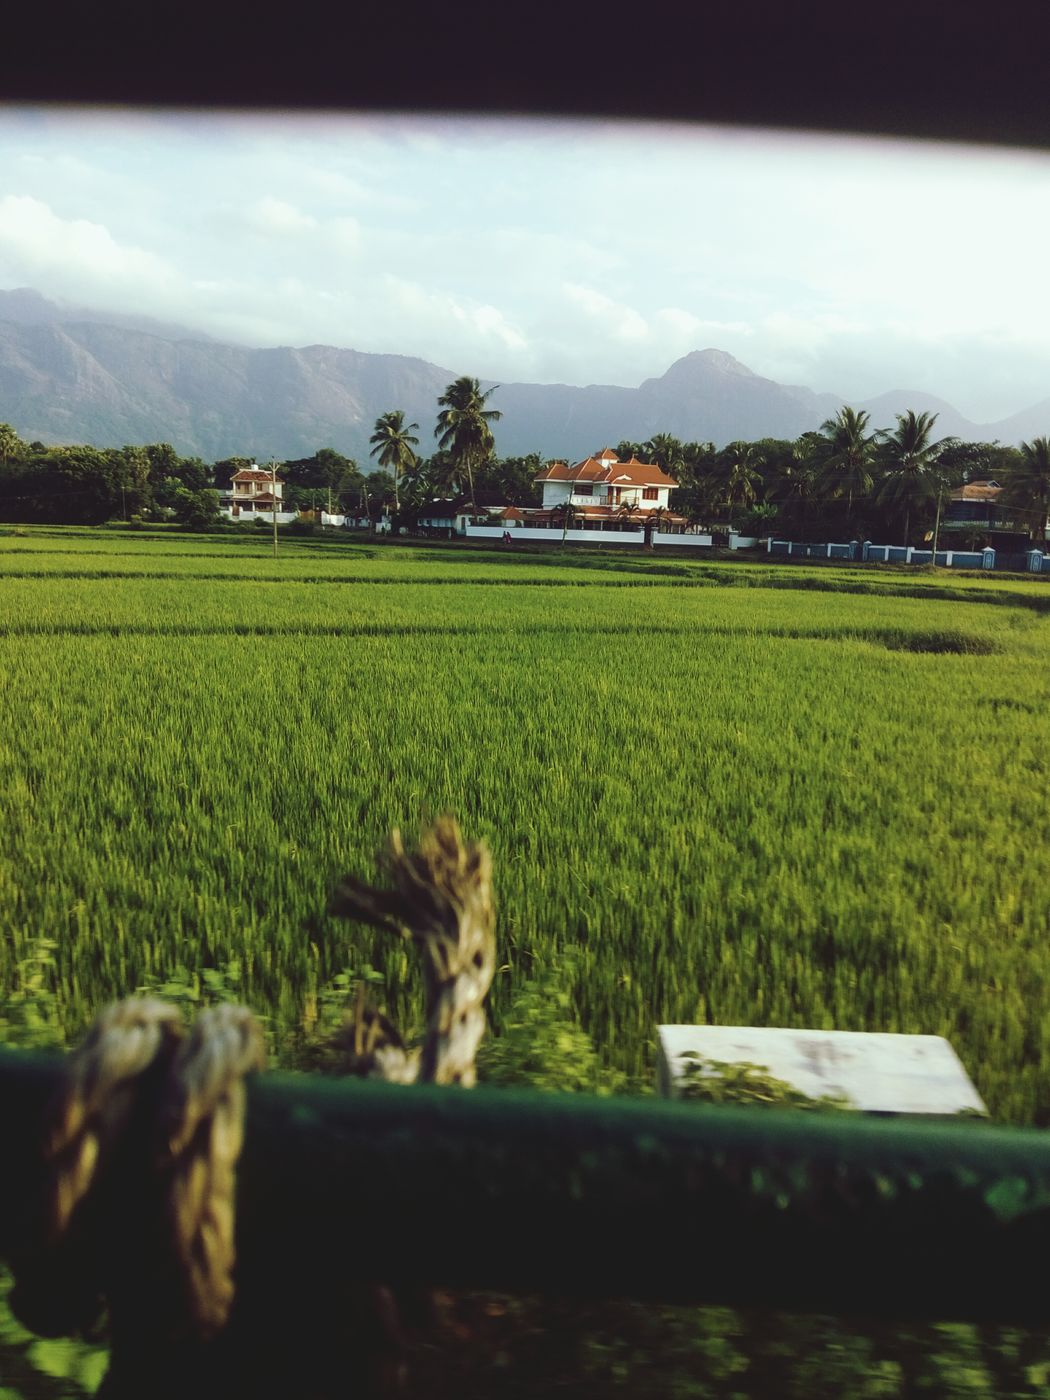 Green Bus Moving Huawei Holly2plus Travelling Fresh Field Window Frame Unexpected Mountains